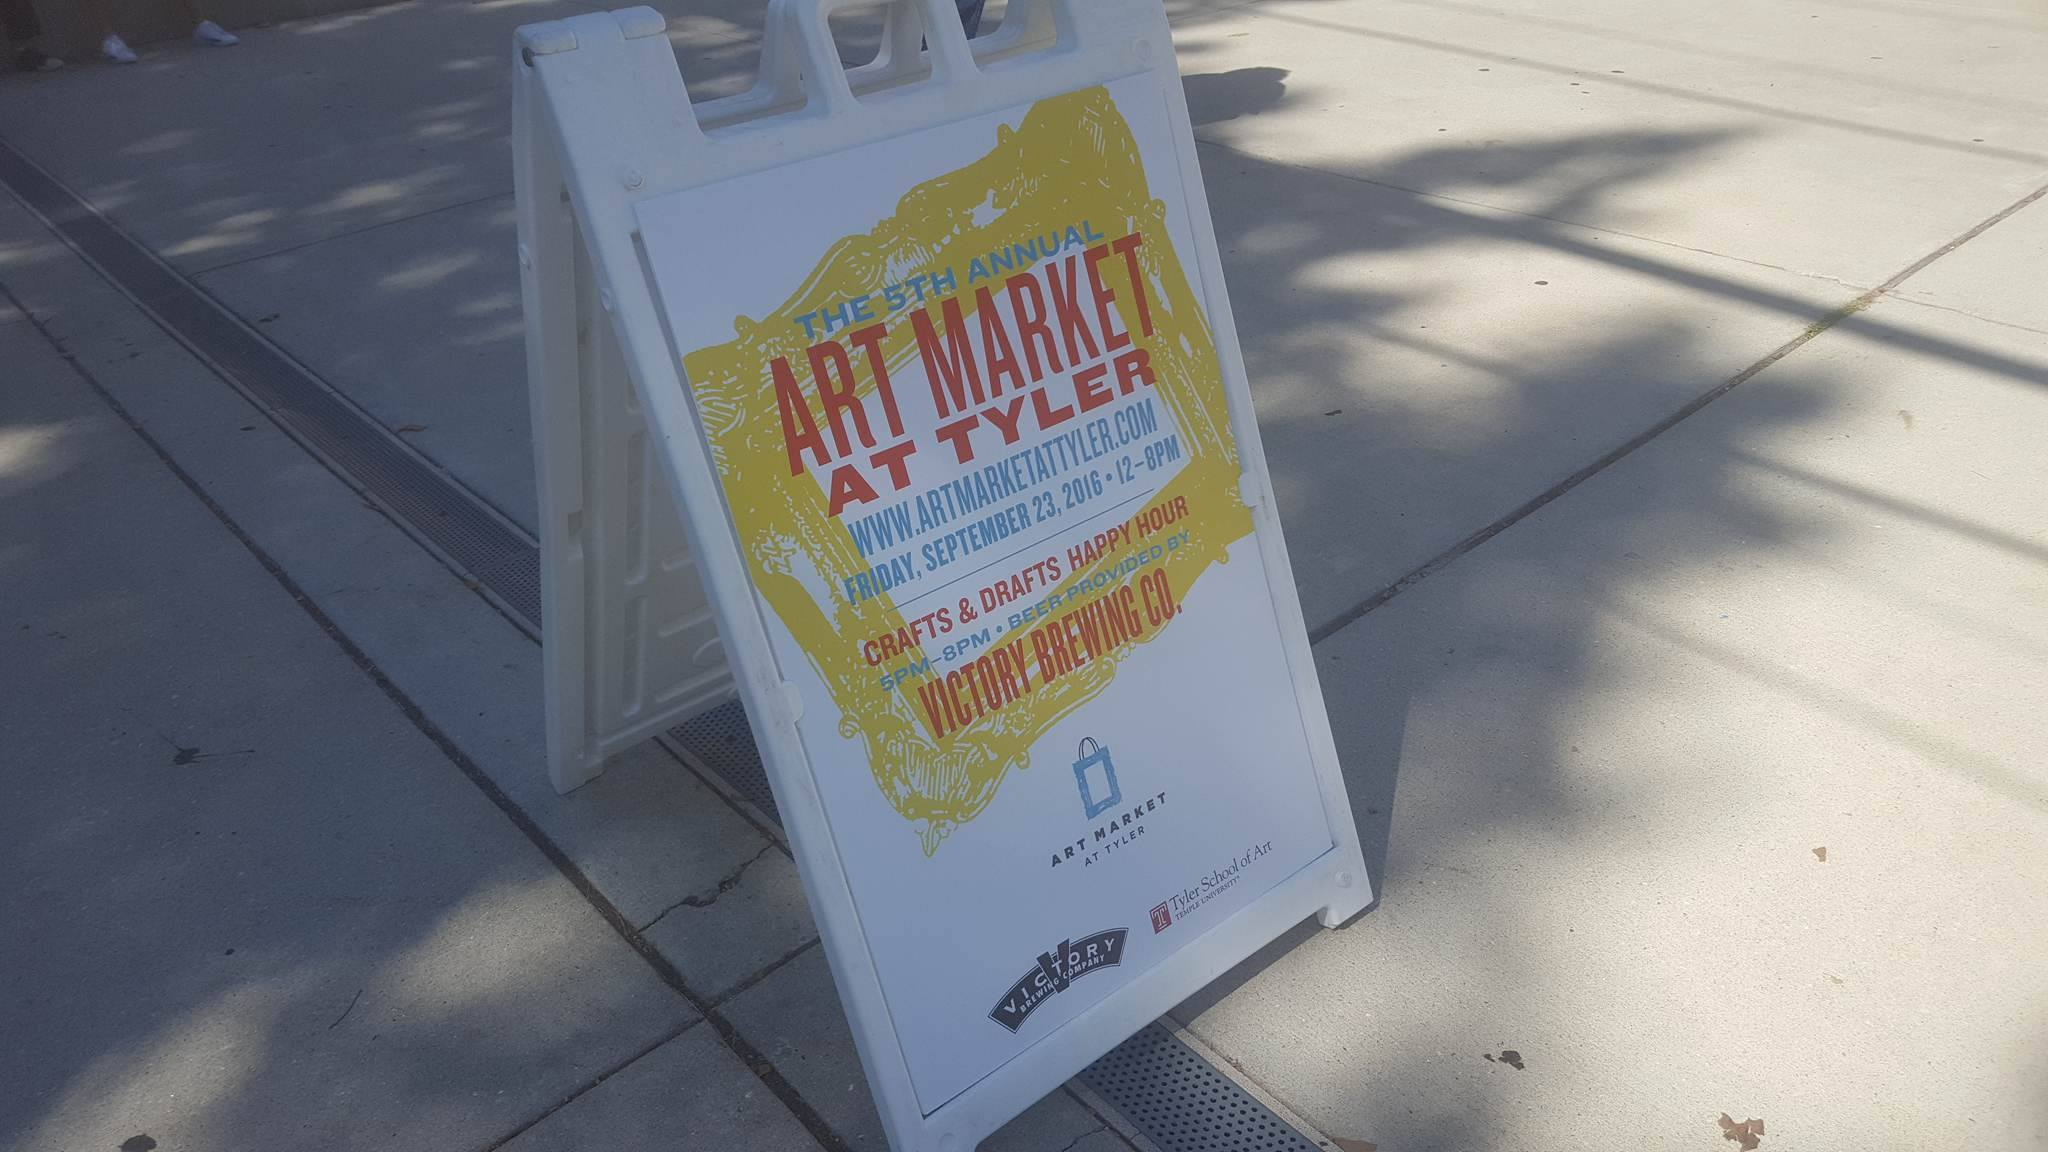 The Tyler Annual Art Market is in its fifth year.